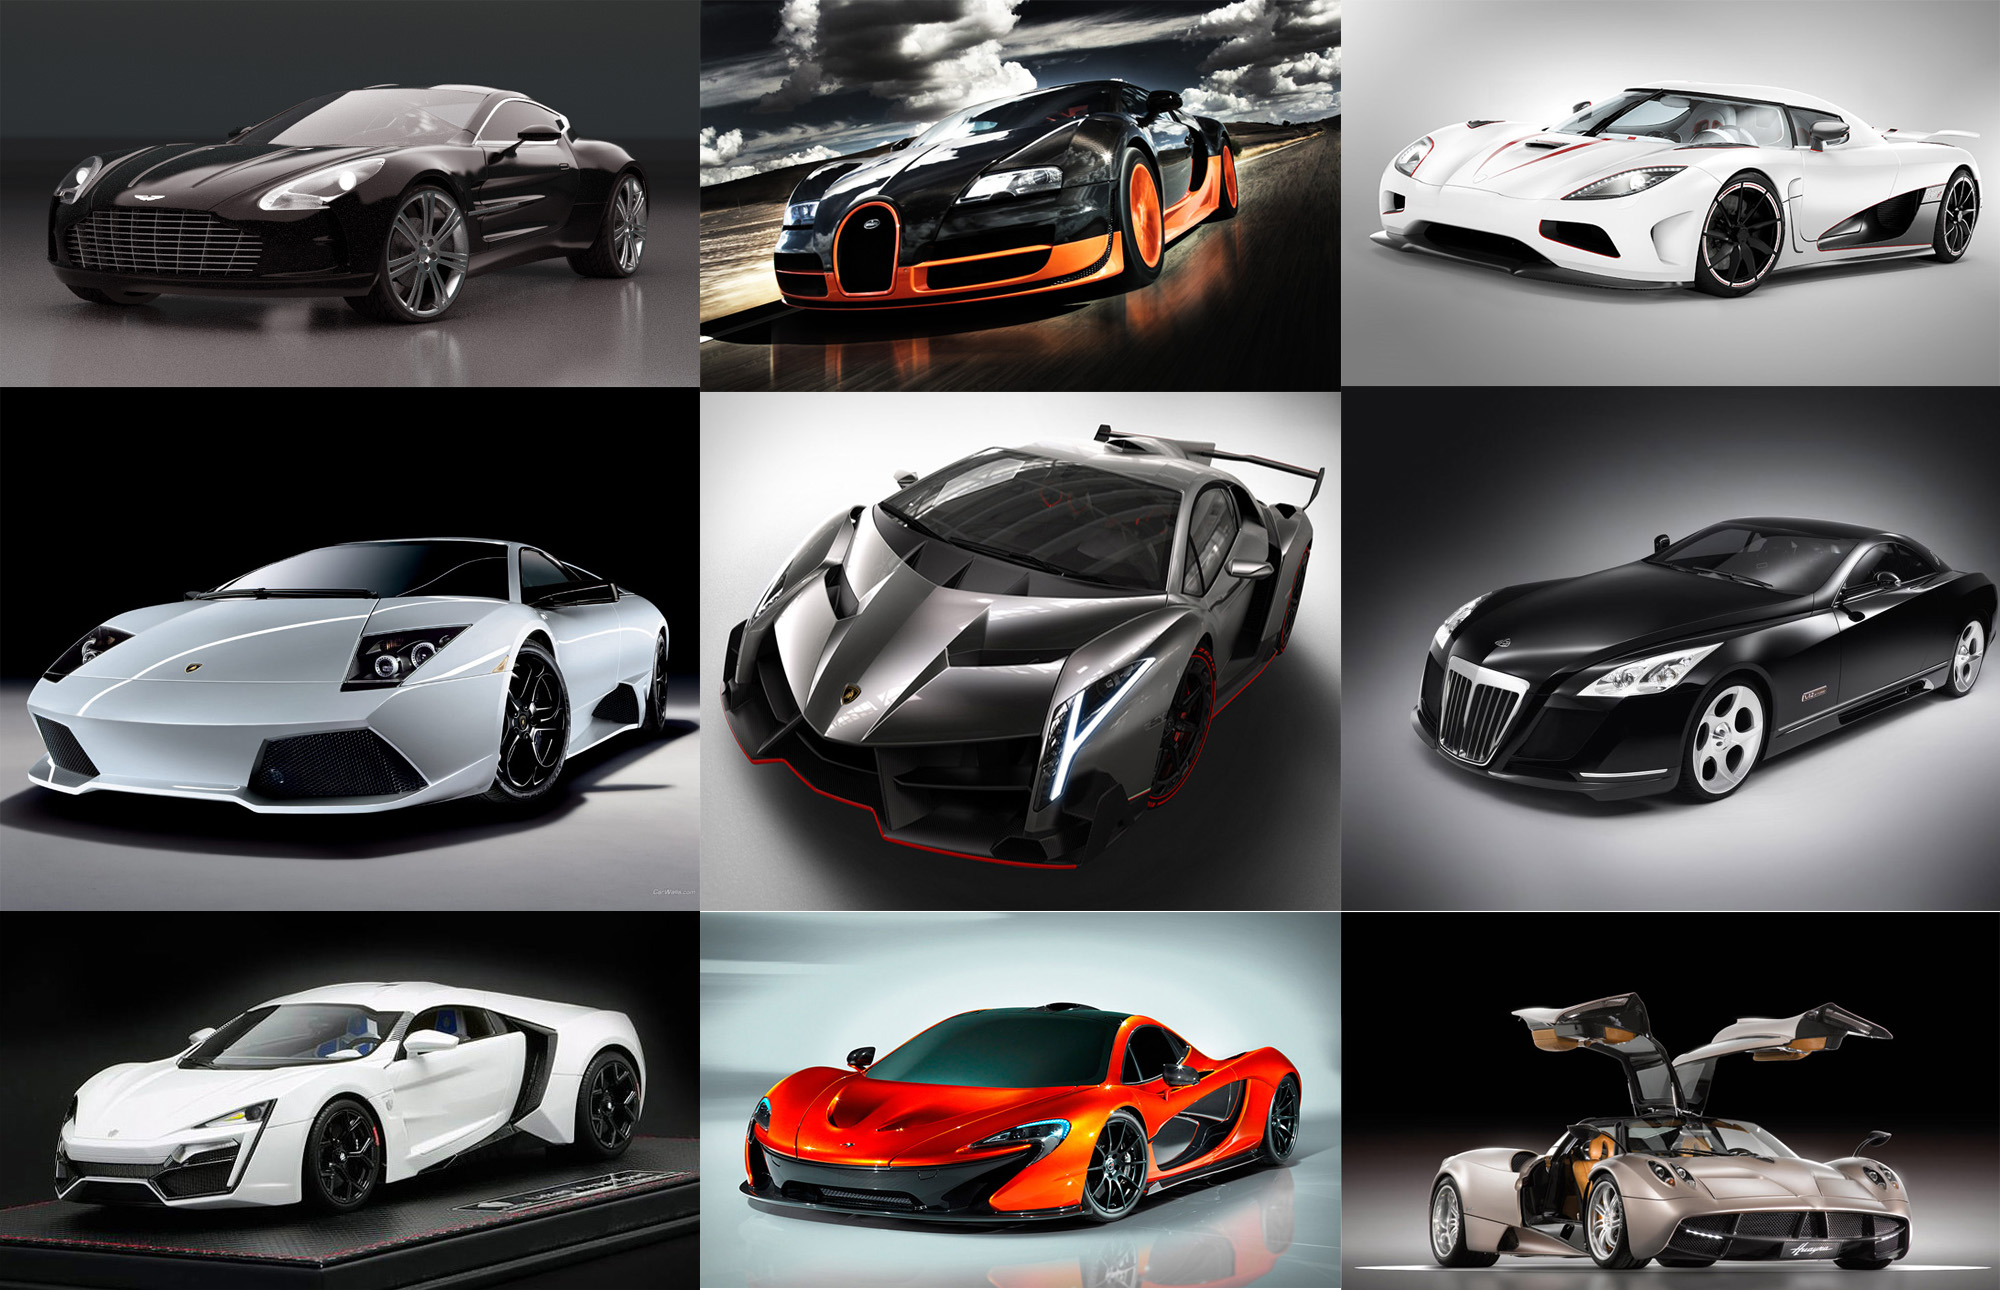 Top Most Expensive Cars In Malaysia Cars Image - Top ten coolest cars in the world